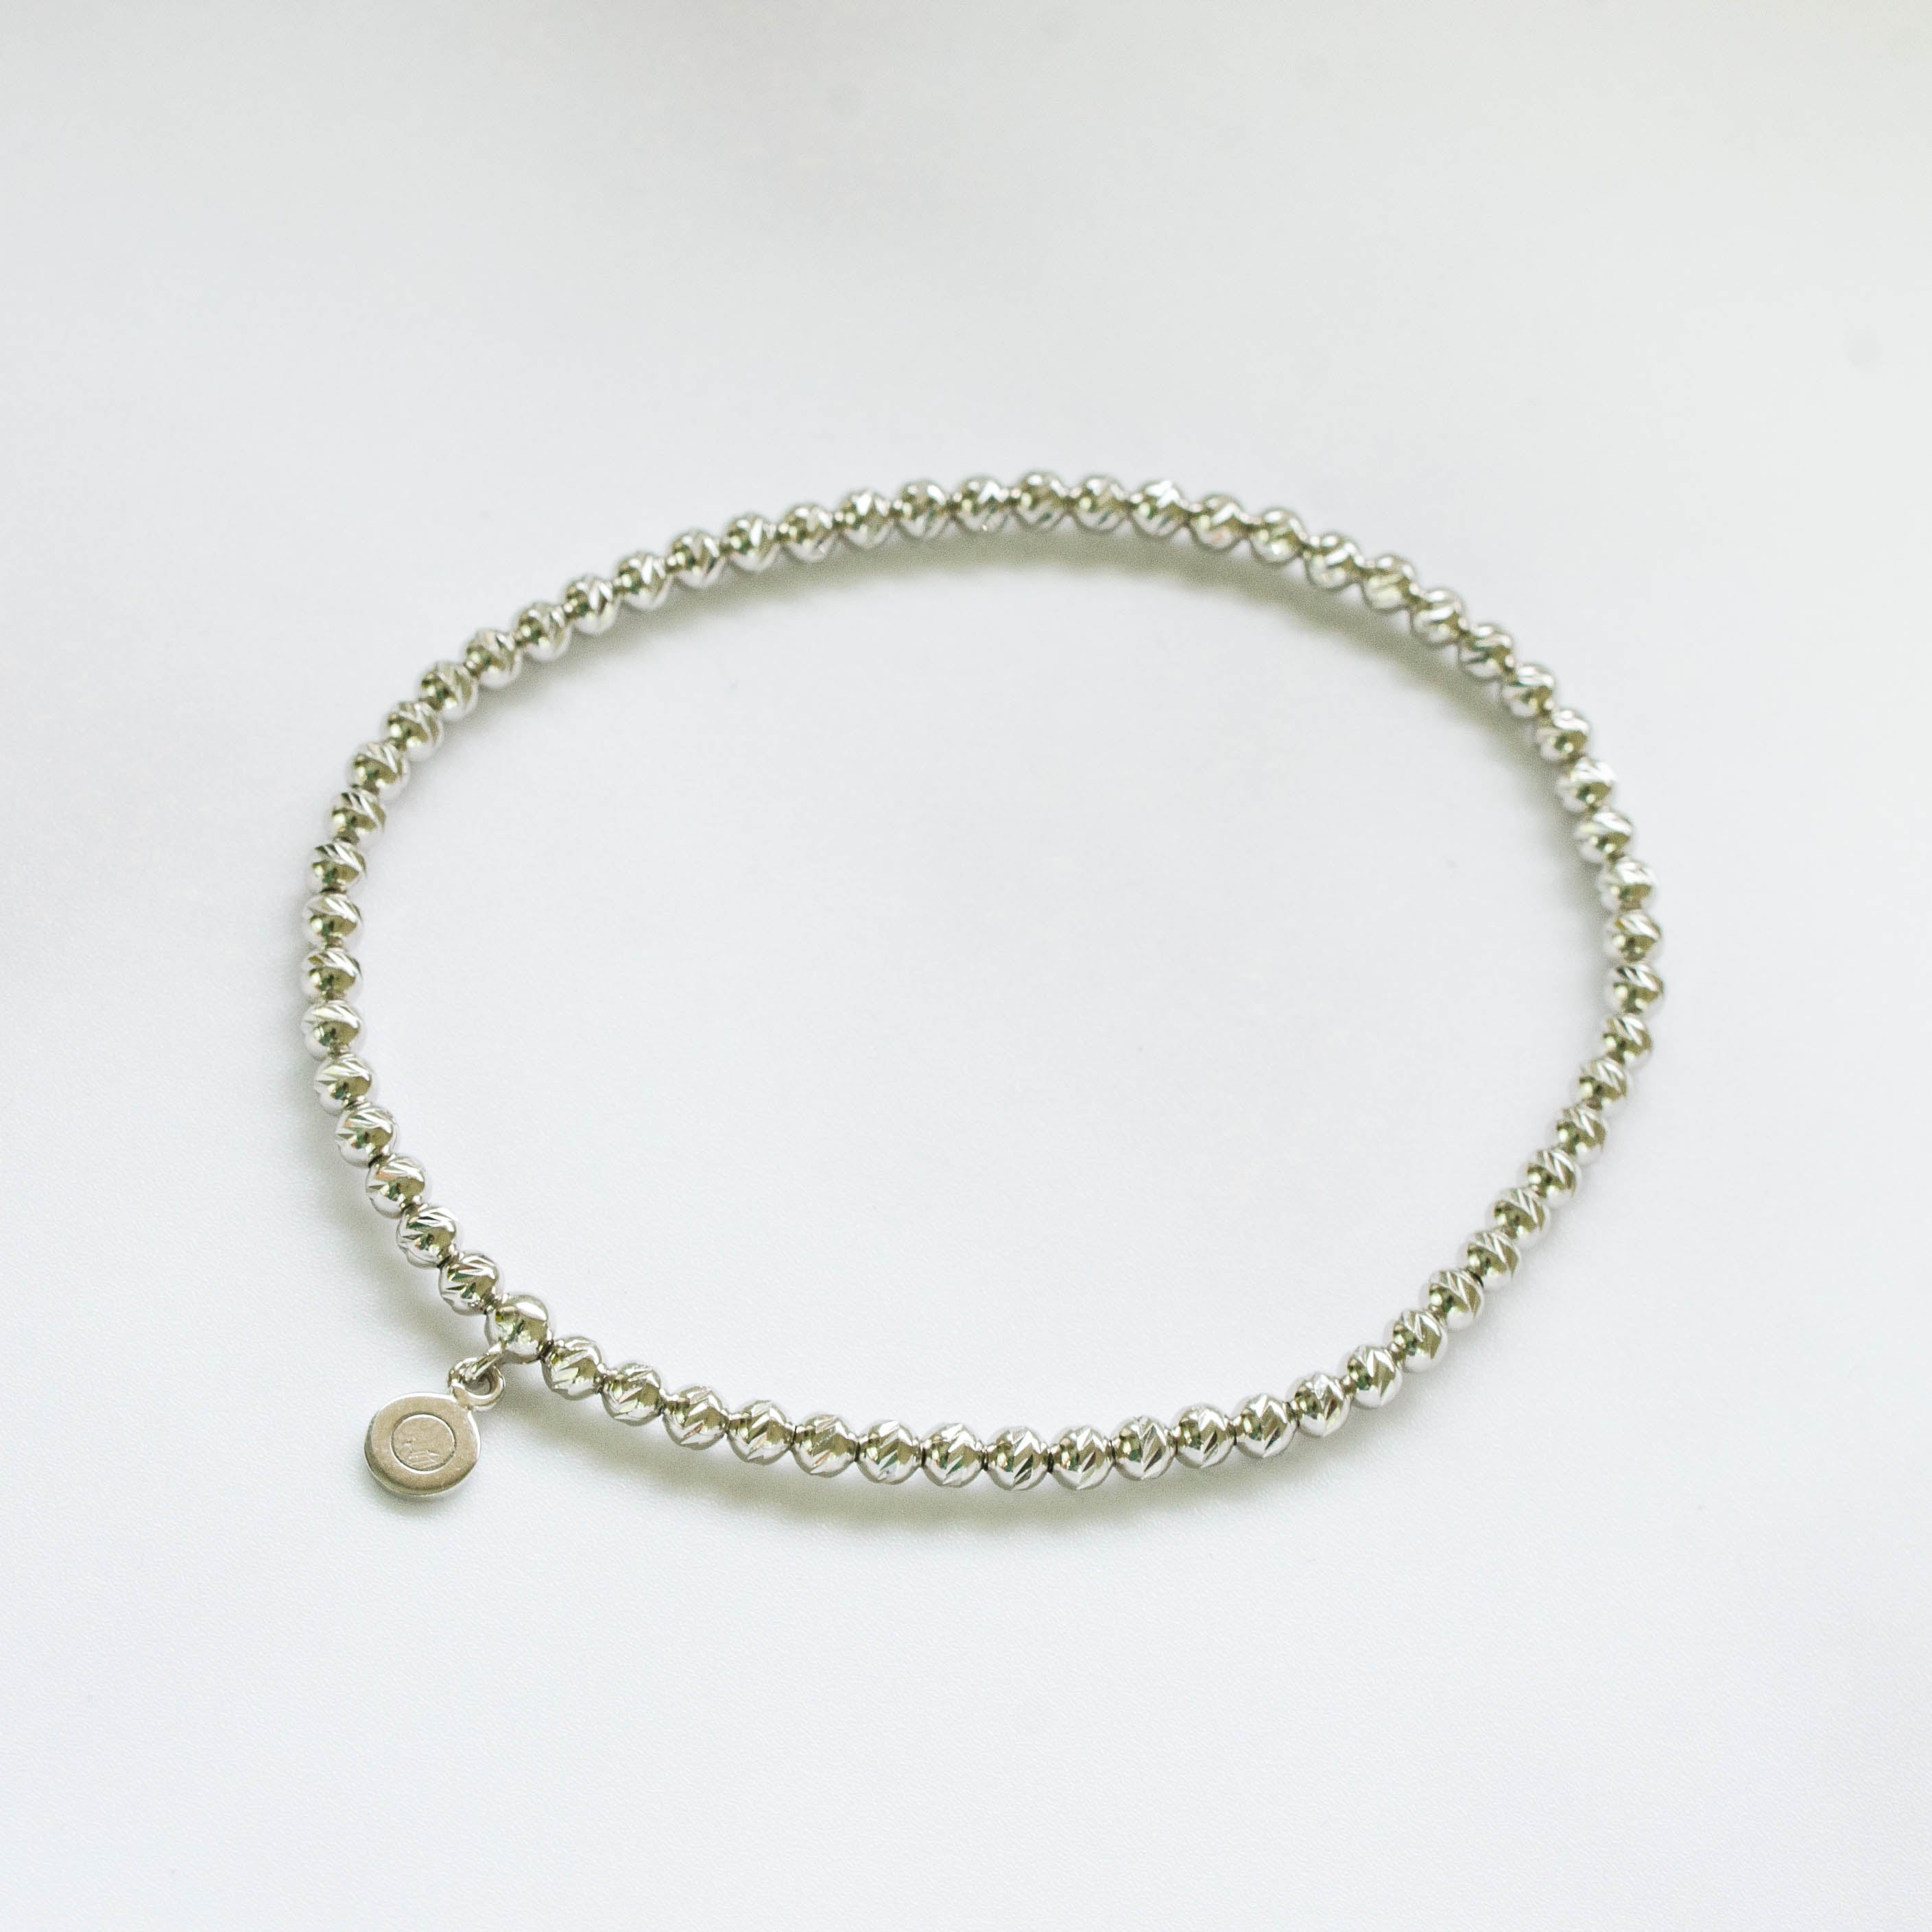 Brilliance Silver Bracelet with Rhodium